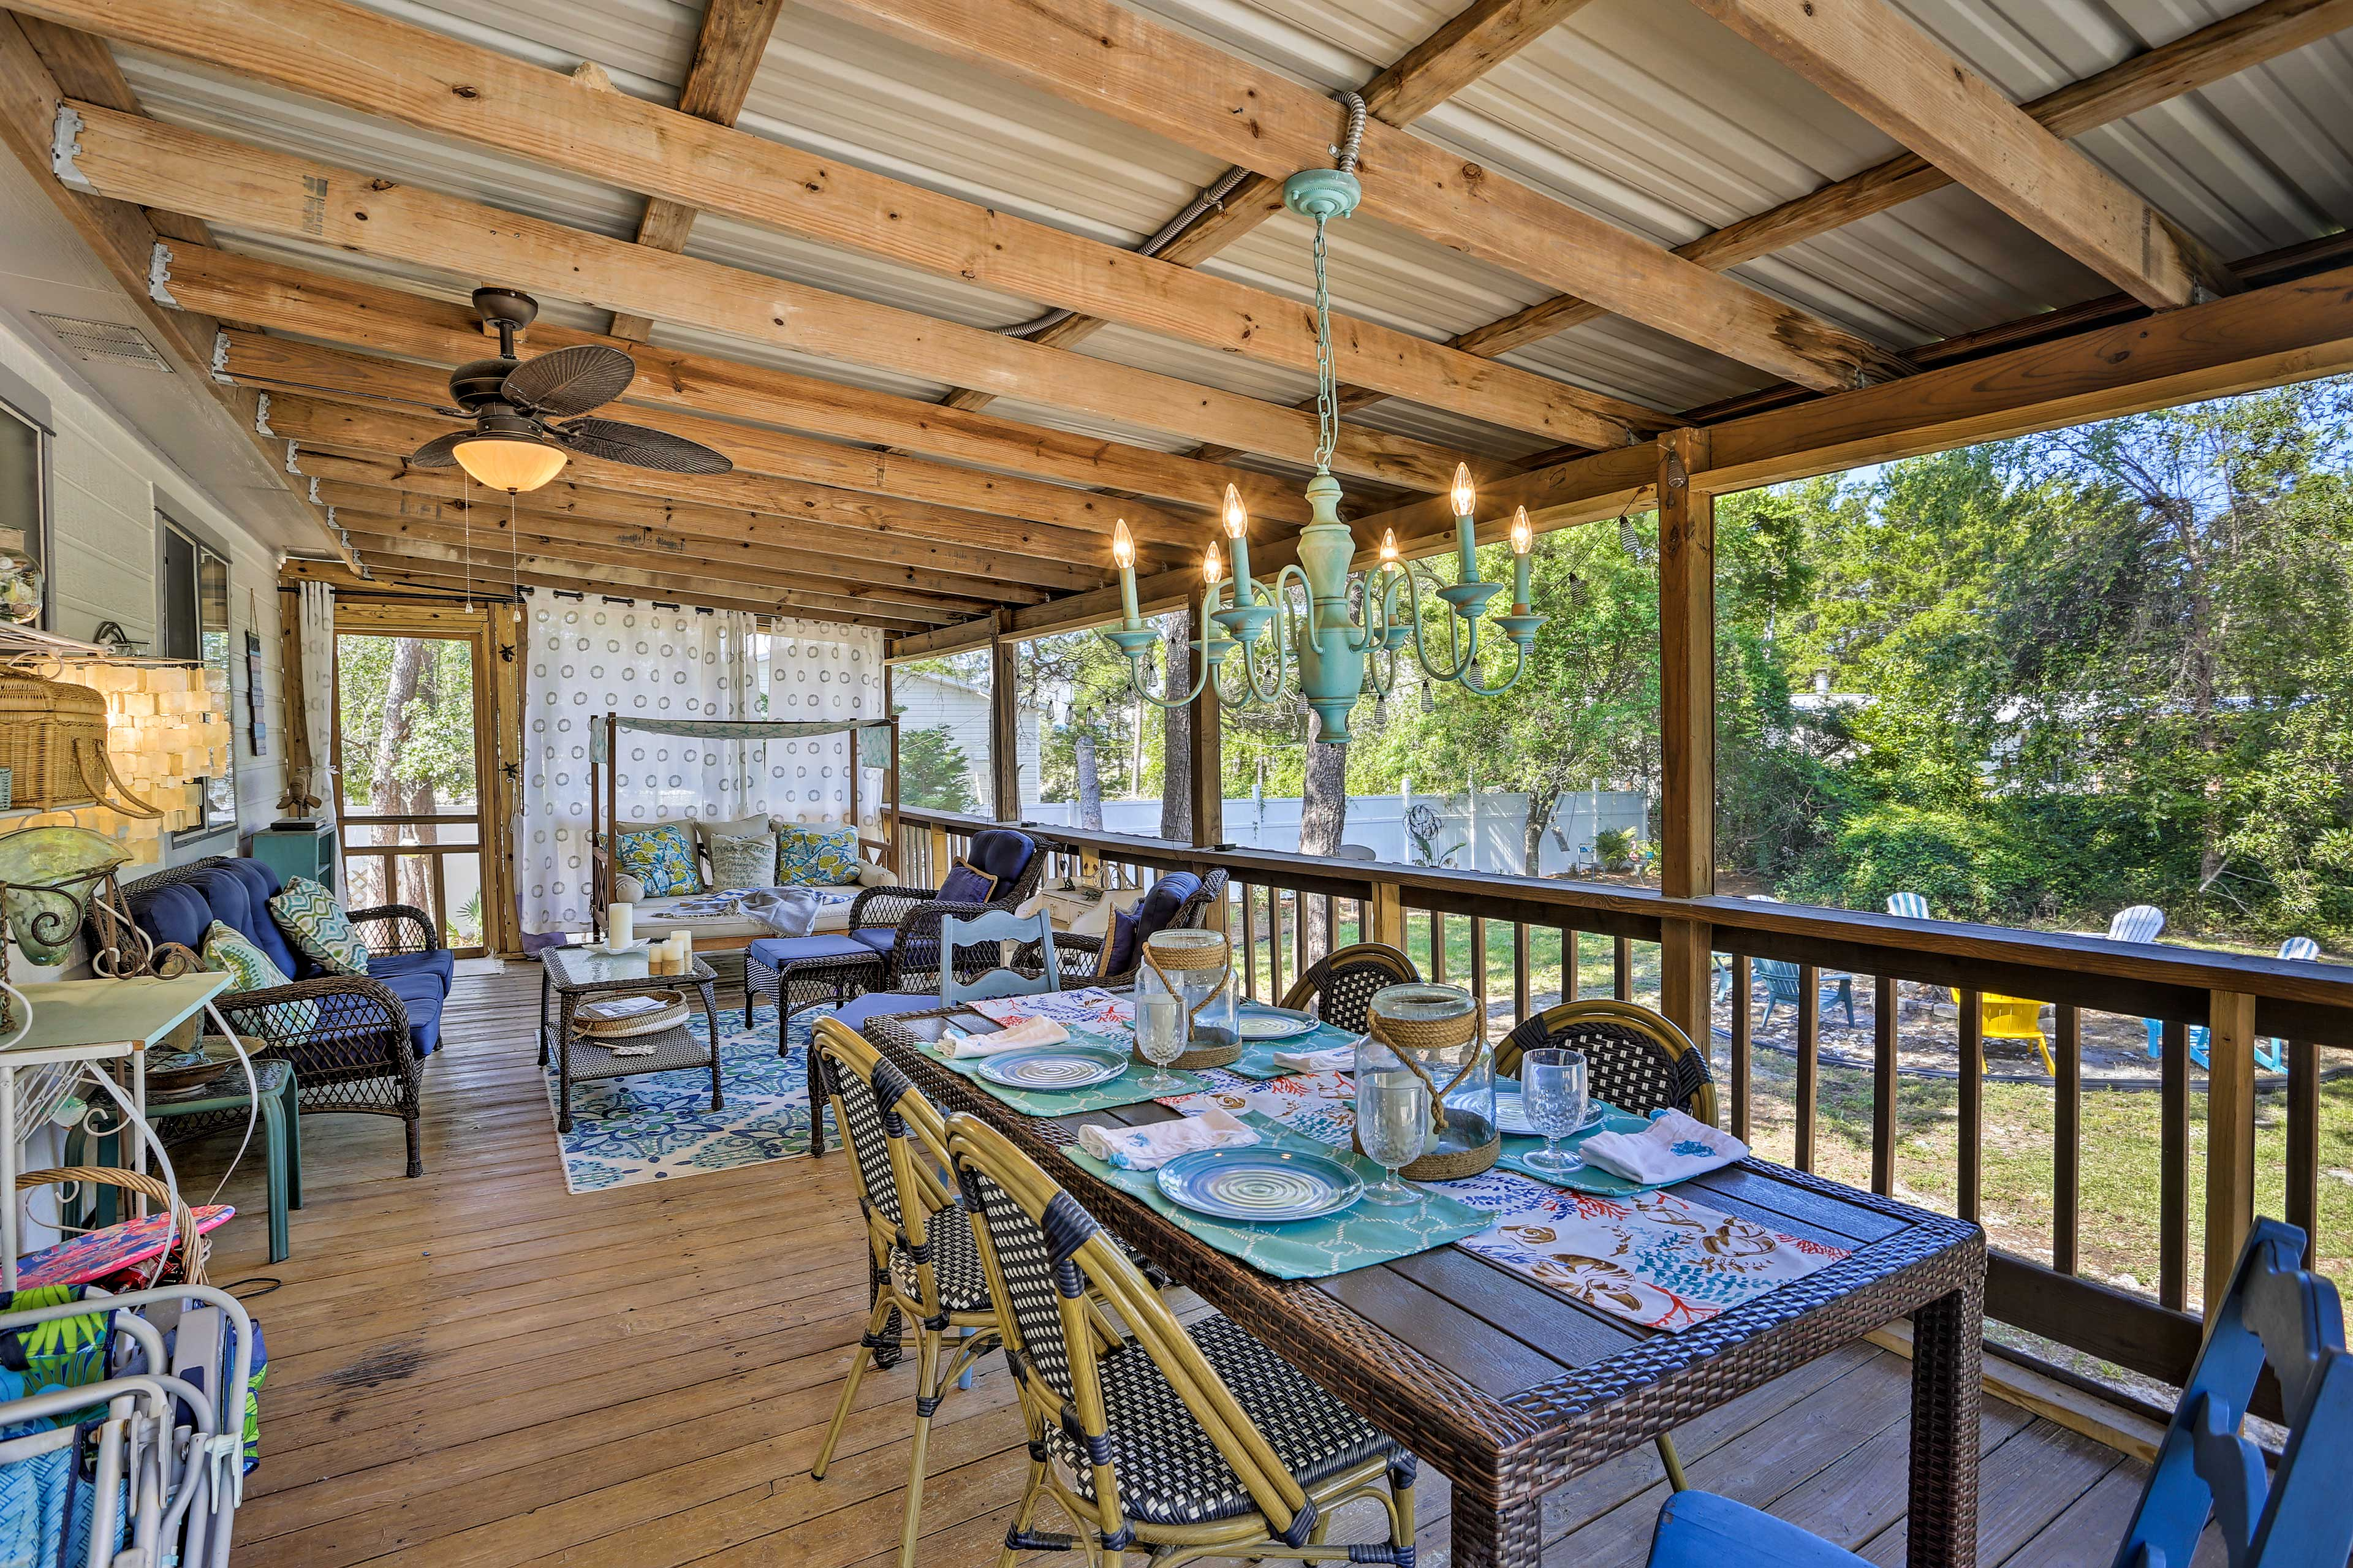 It'll be hard to leave this elegant outdoor living space!